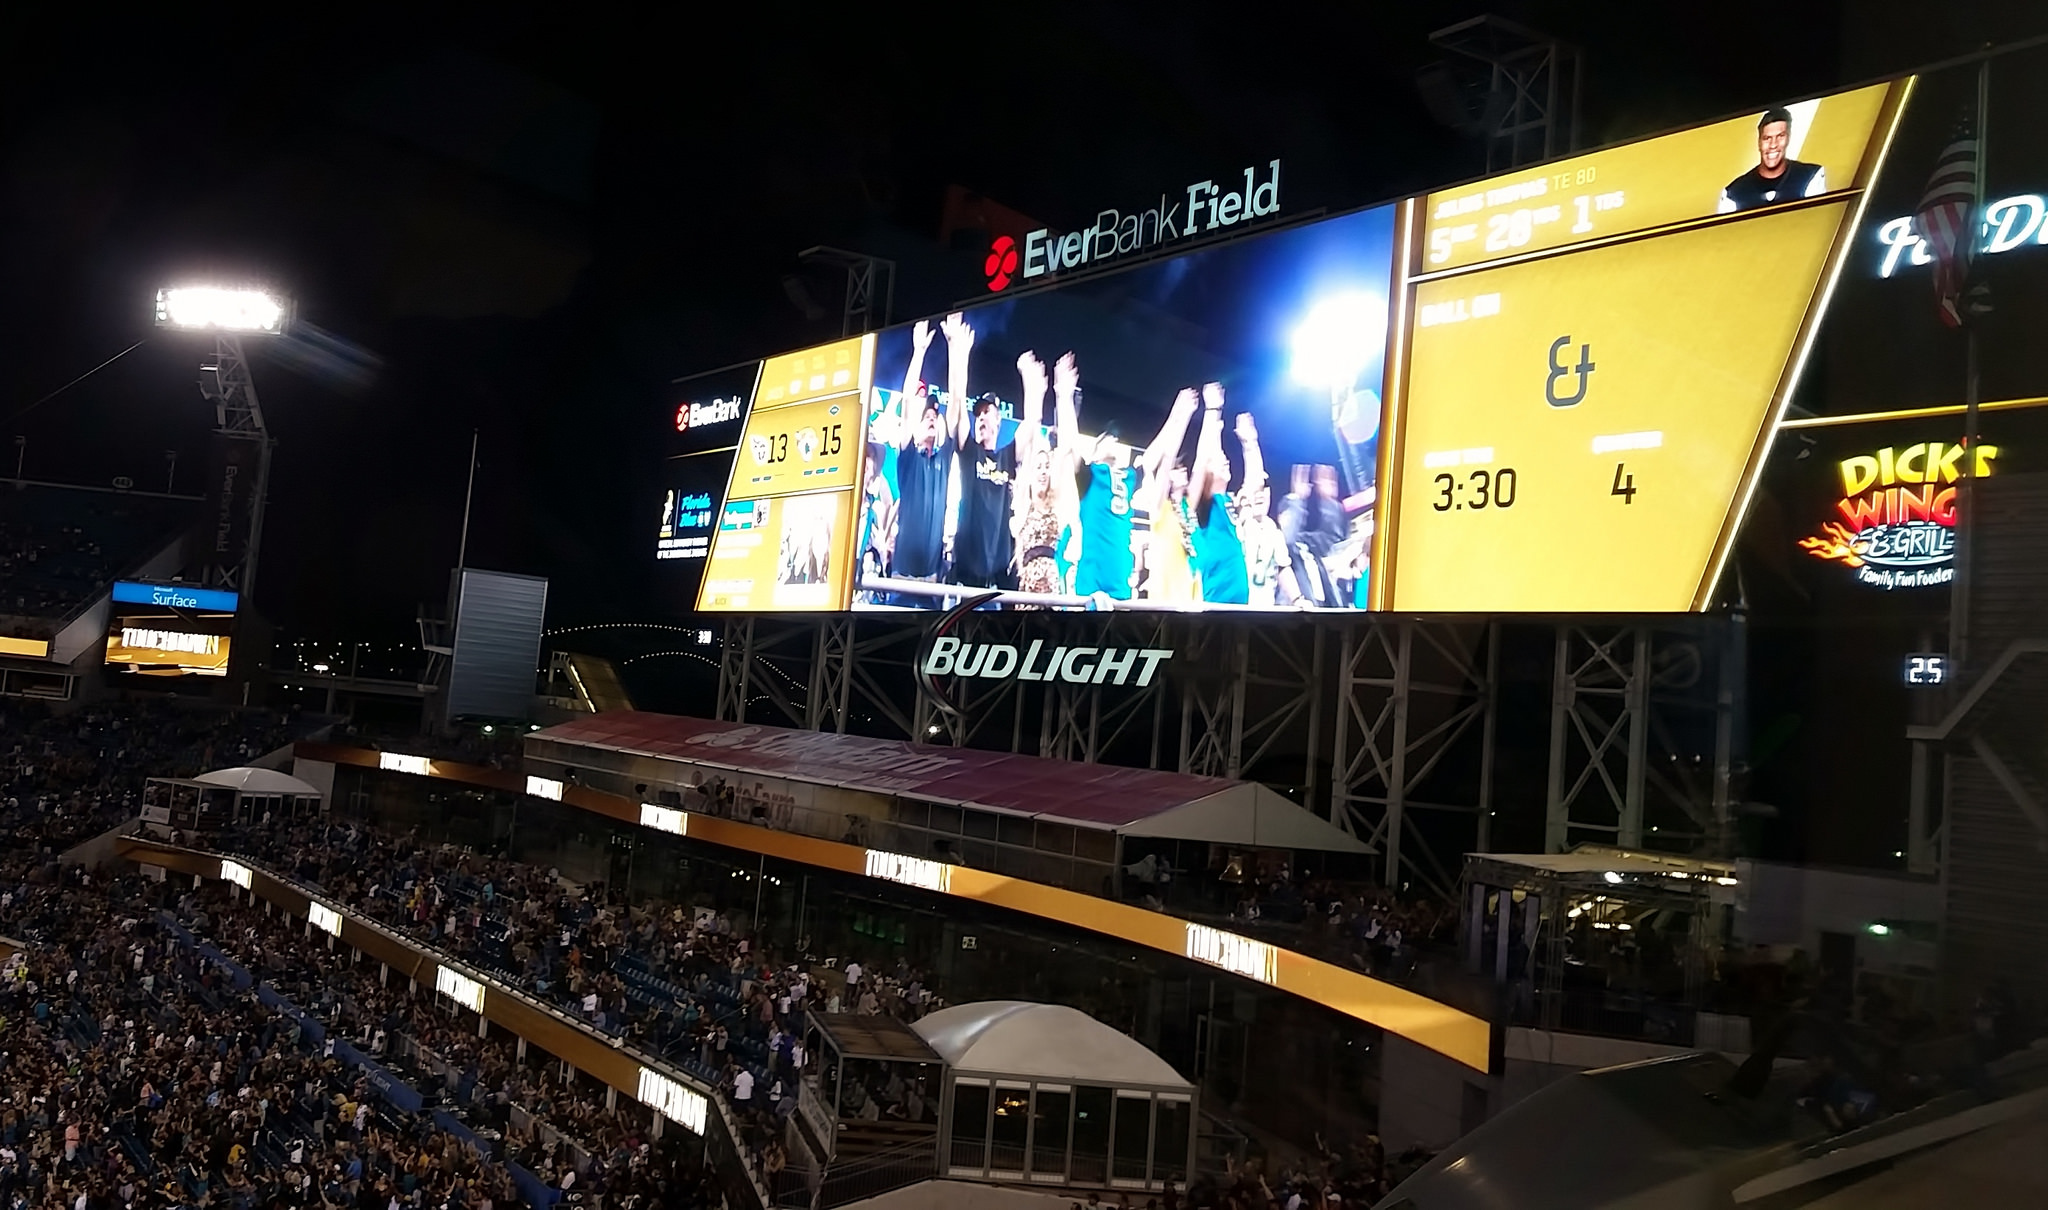 TIAA Bank Field Bud Light for fans at a Jacksonville Jaguars game